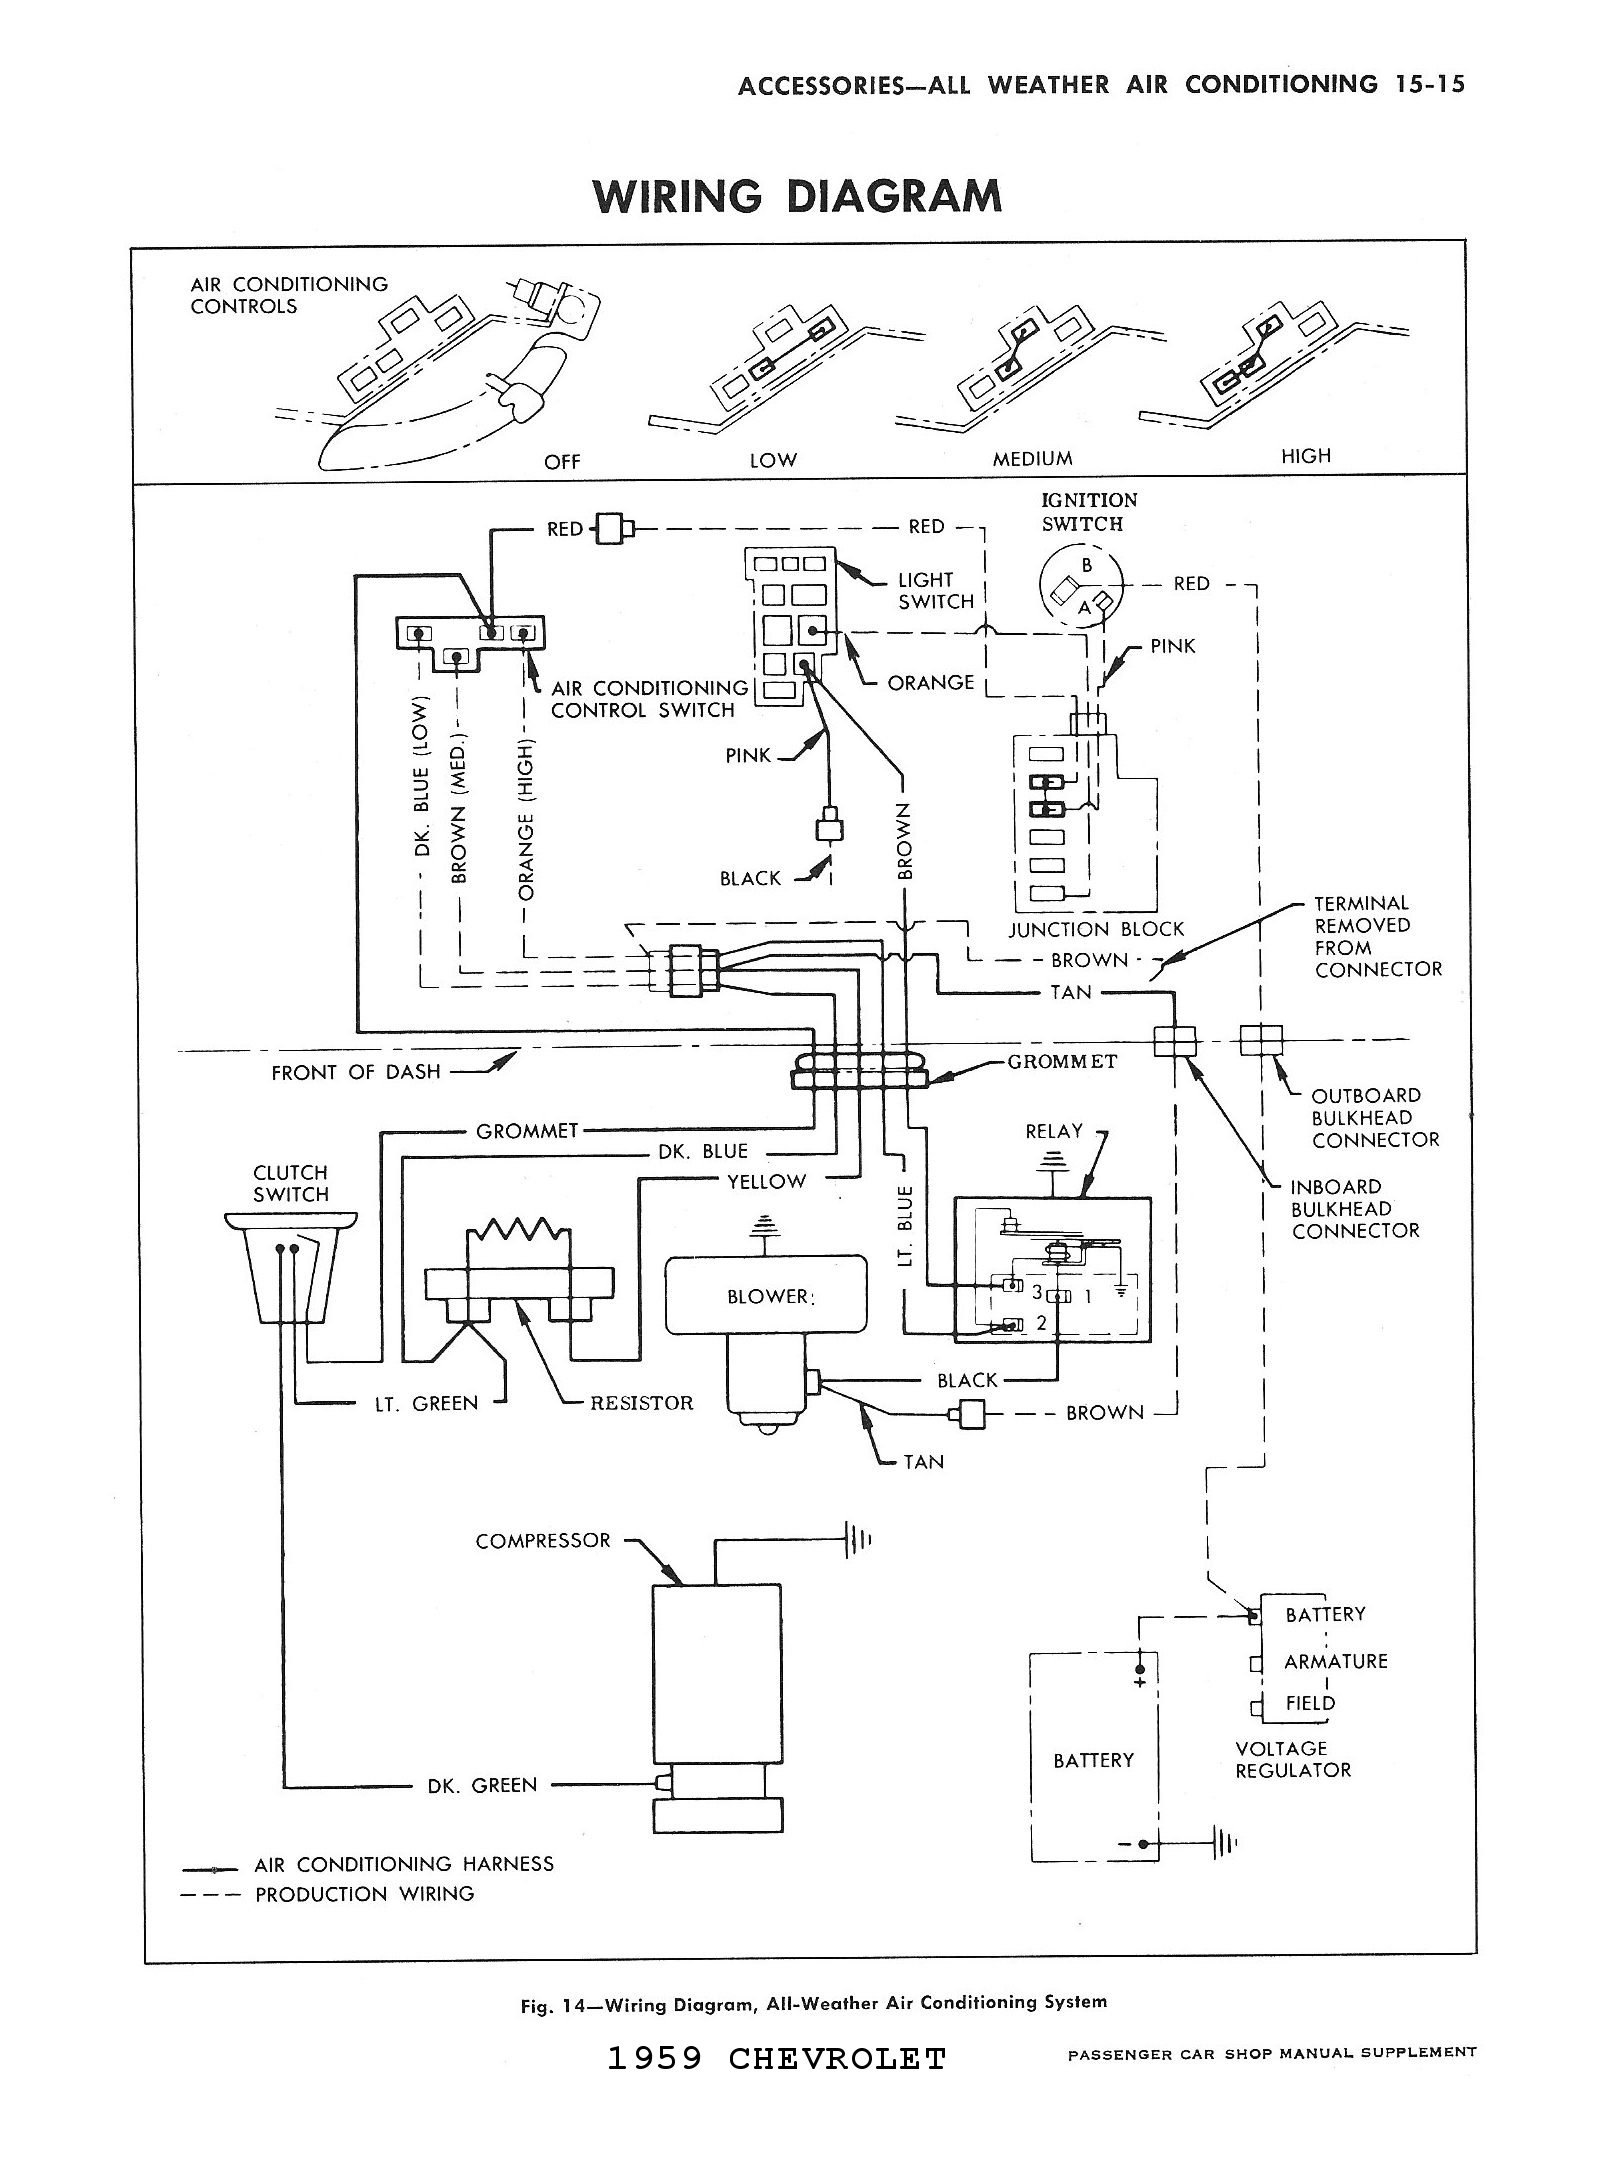 1959 corvette heater diagram  1959  free engine image for